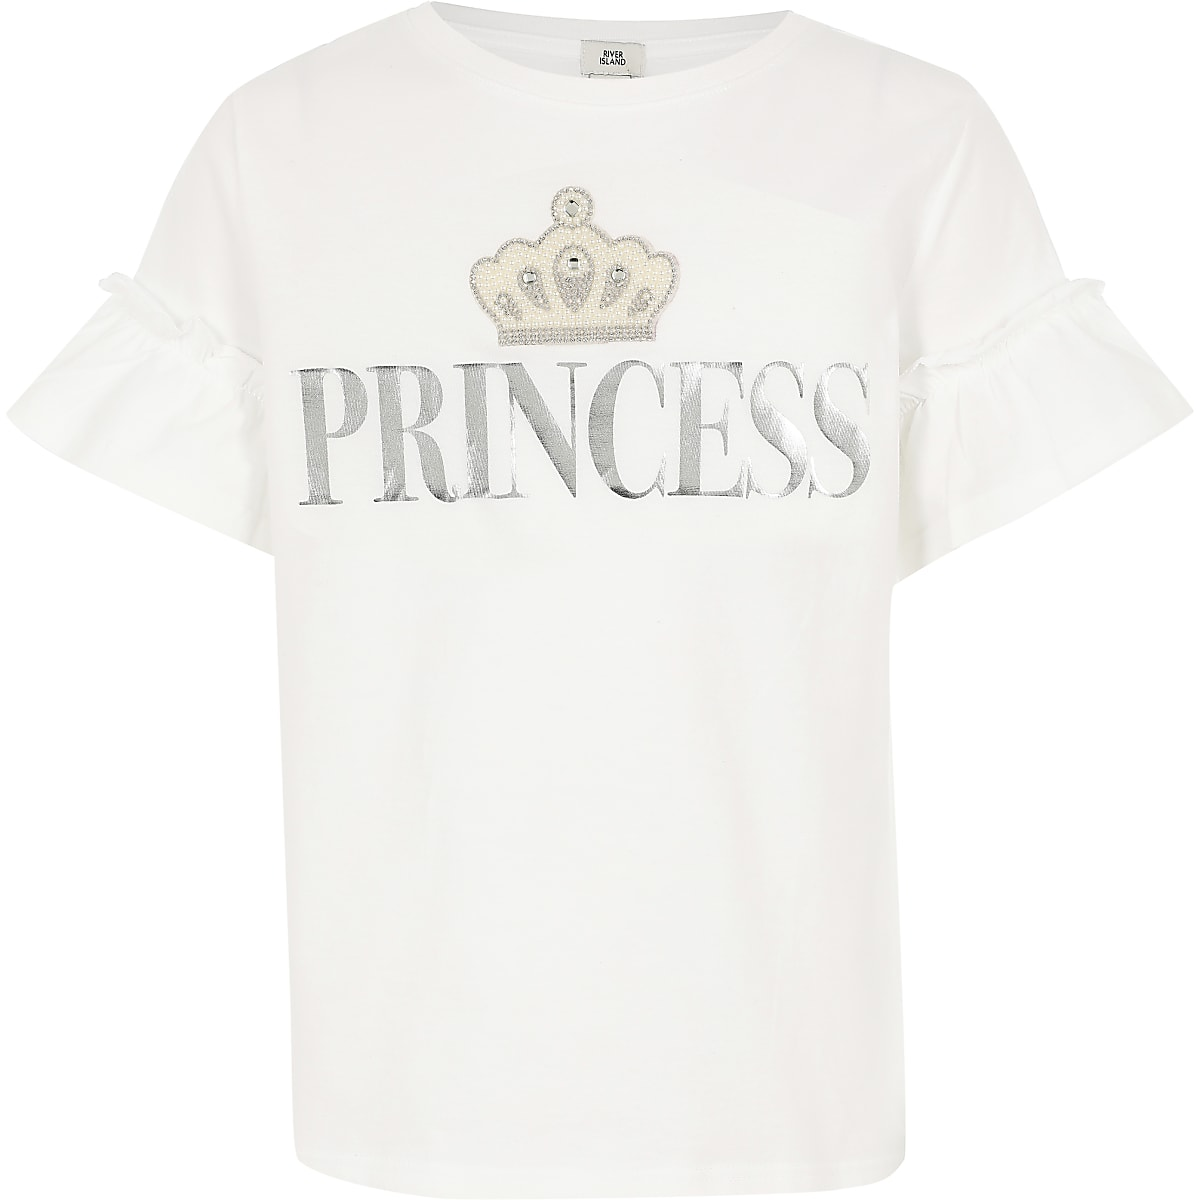 Girls 'Princess' frill sleeve T-shirt